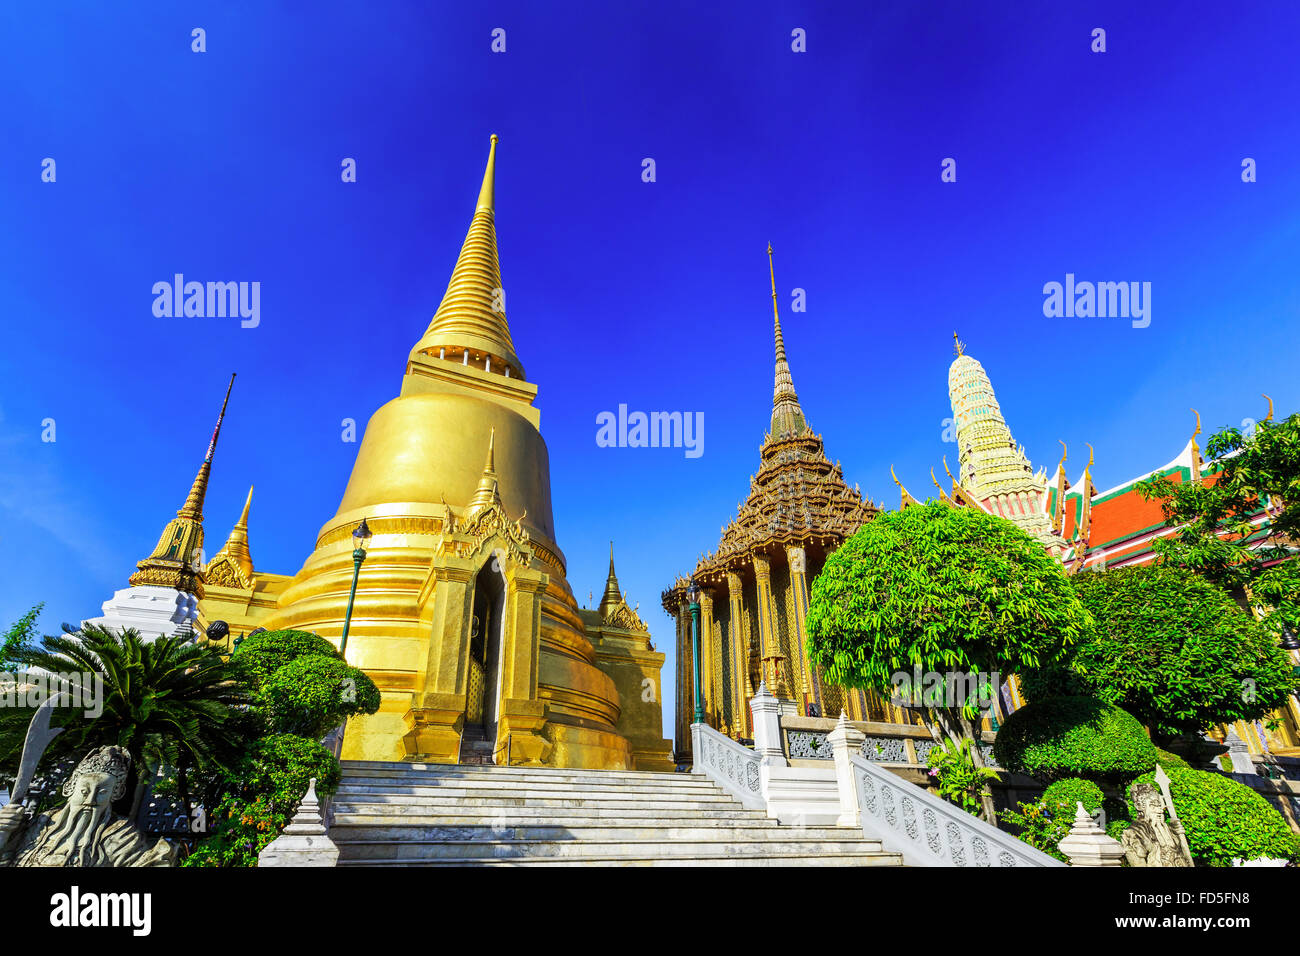 Bangkok, Thailand. Wat Phra Kaew - the Temple of Emerald Buddha - Stock Image